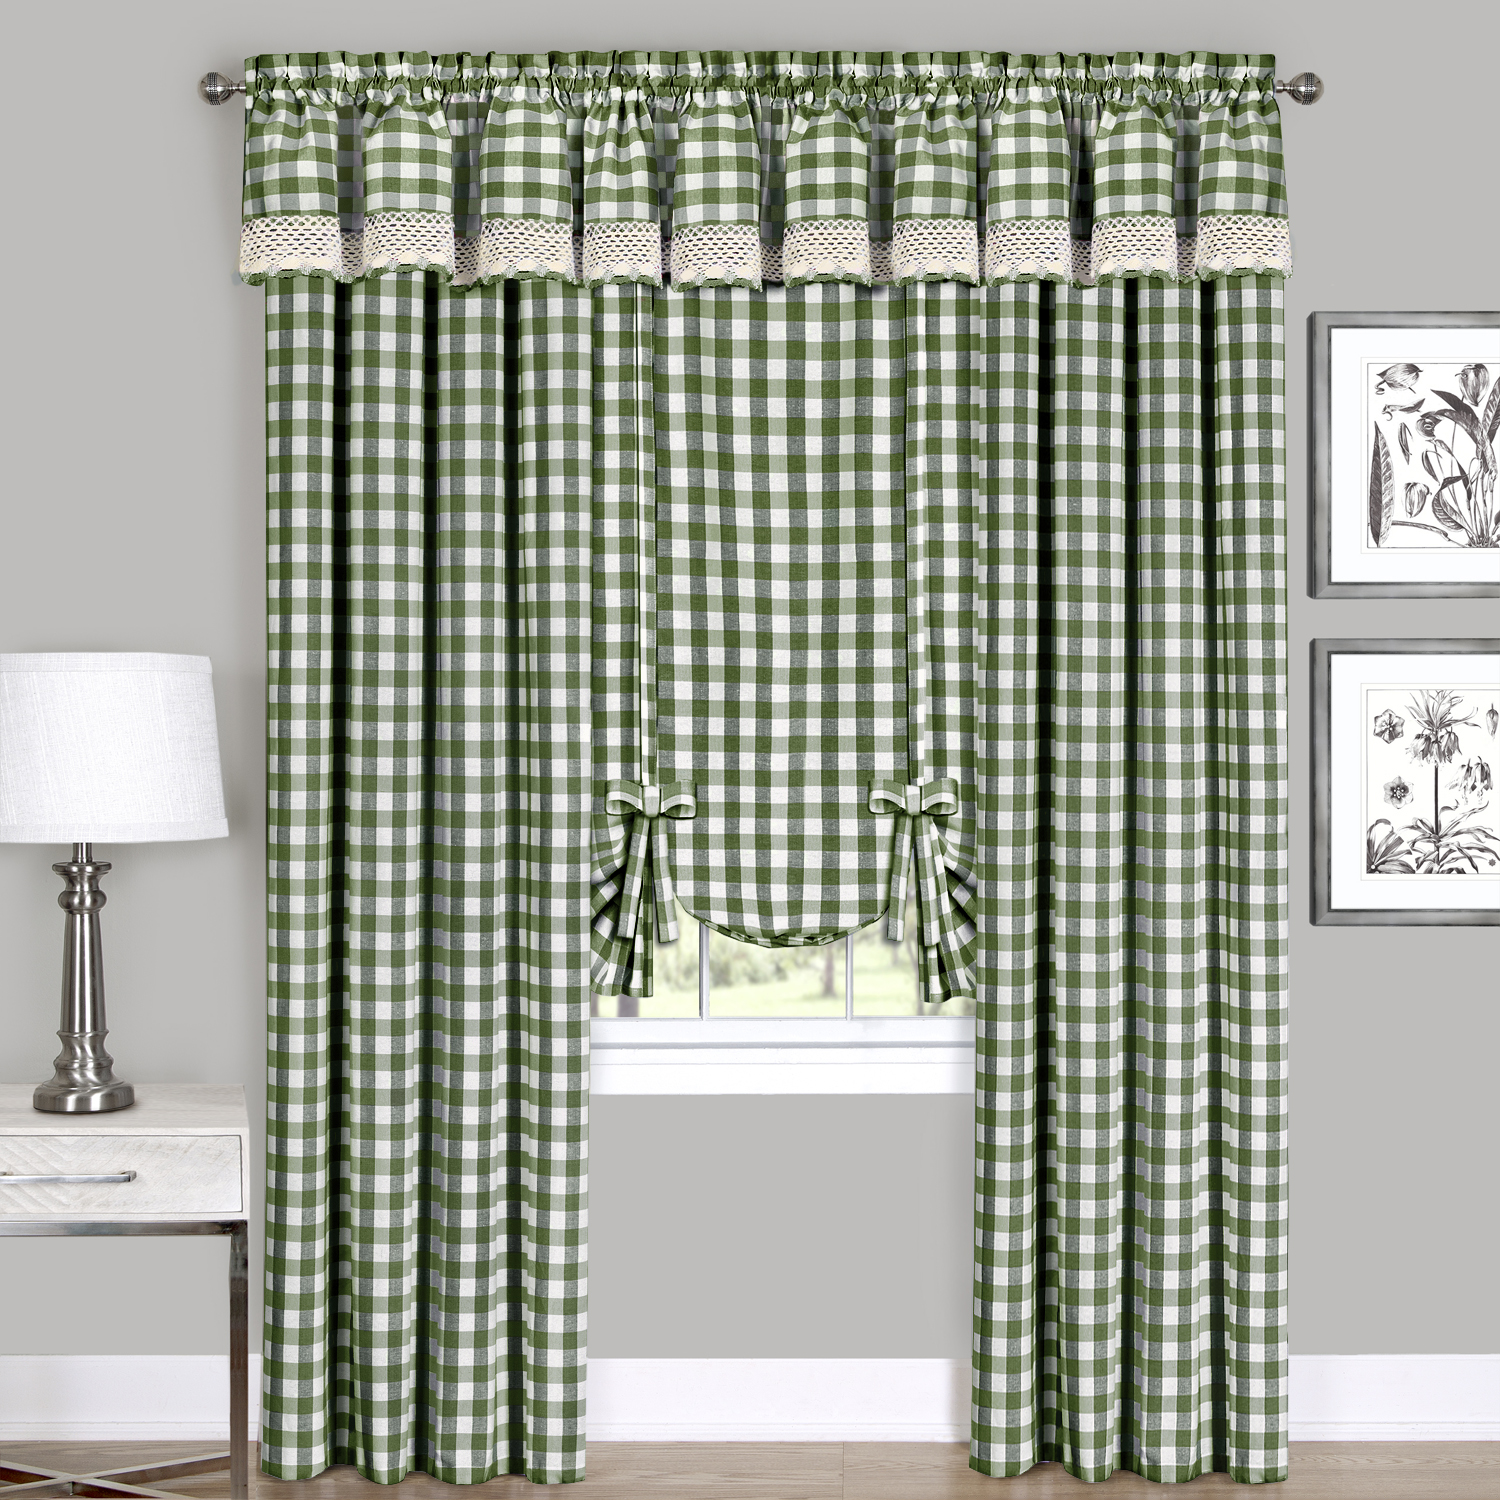 Sage Checkered Plaid Gingham Kitchen Window Curtain Drapes P